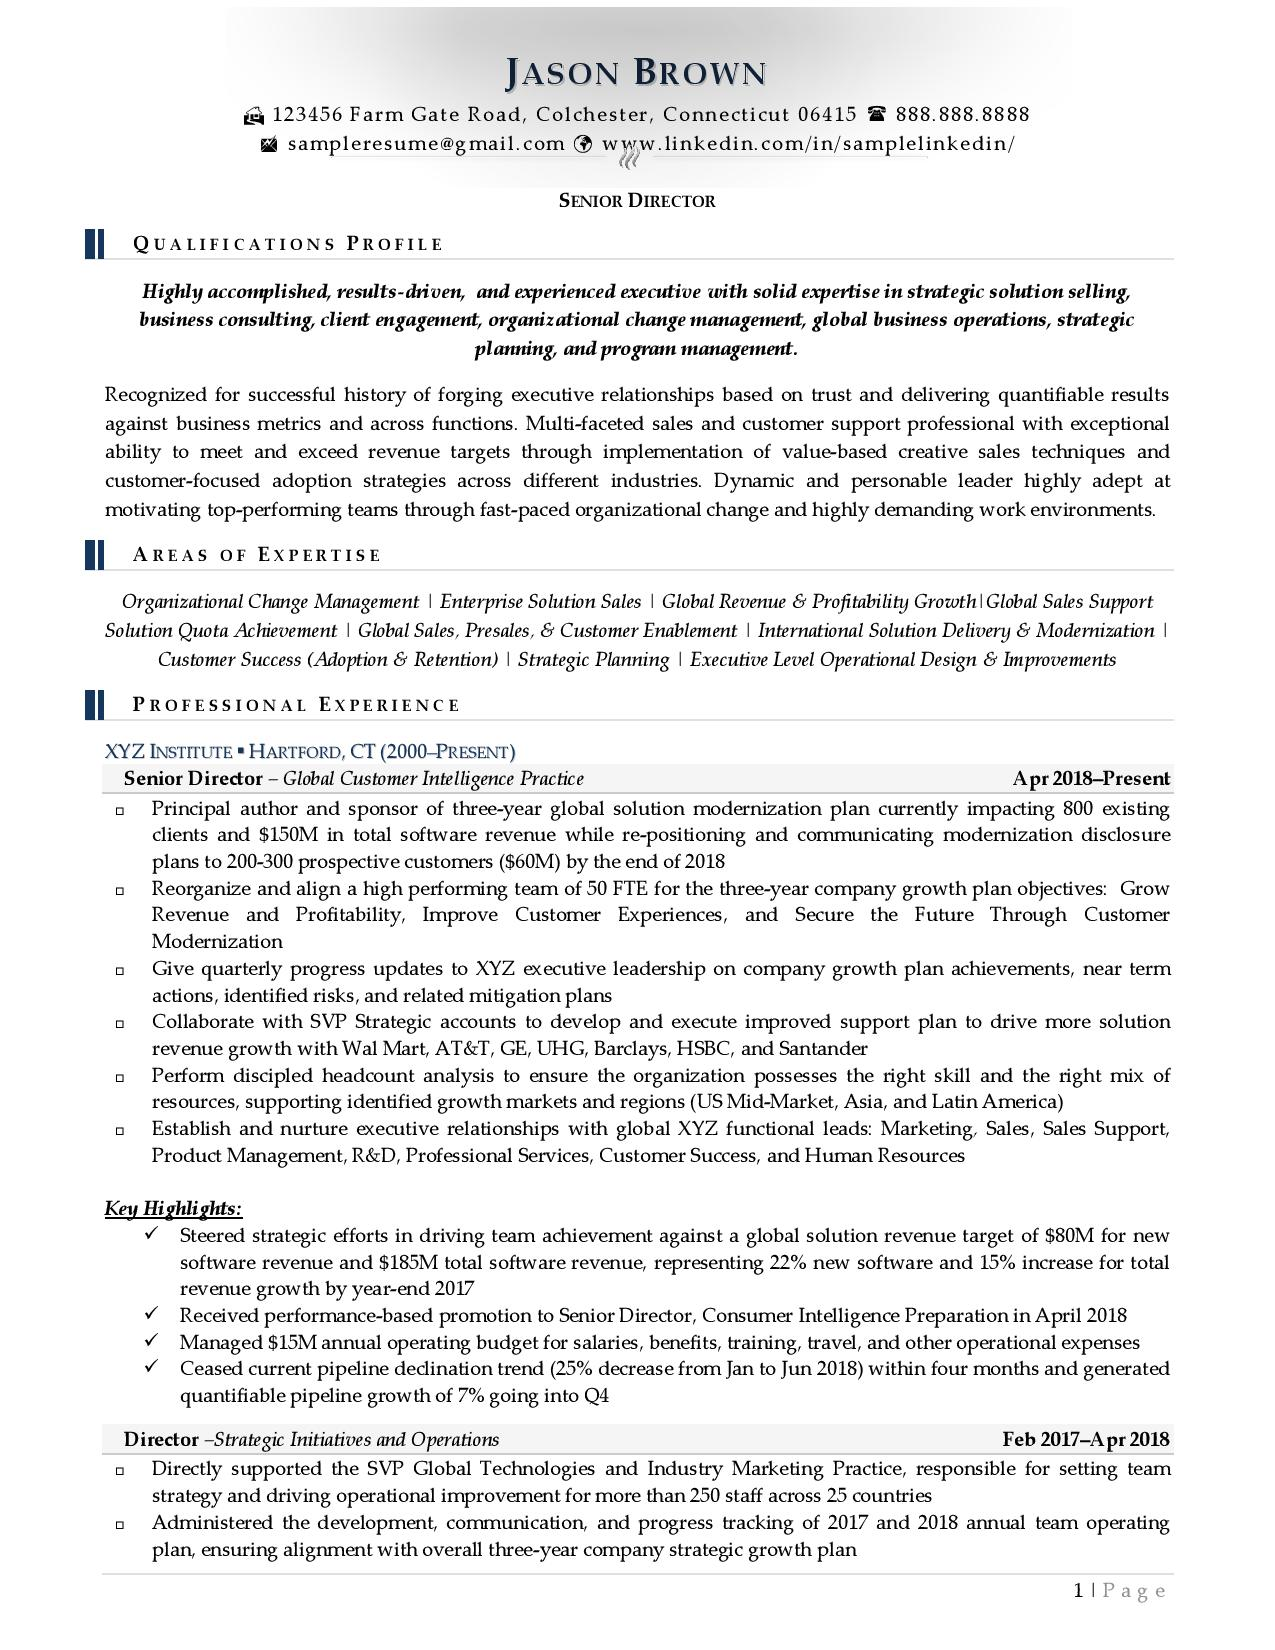 Senior director resume examples with light color accents page 1